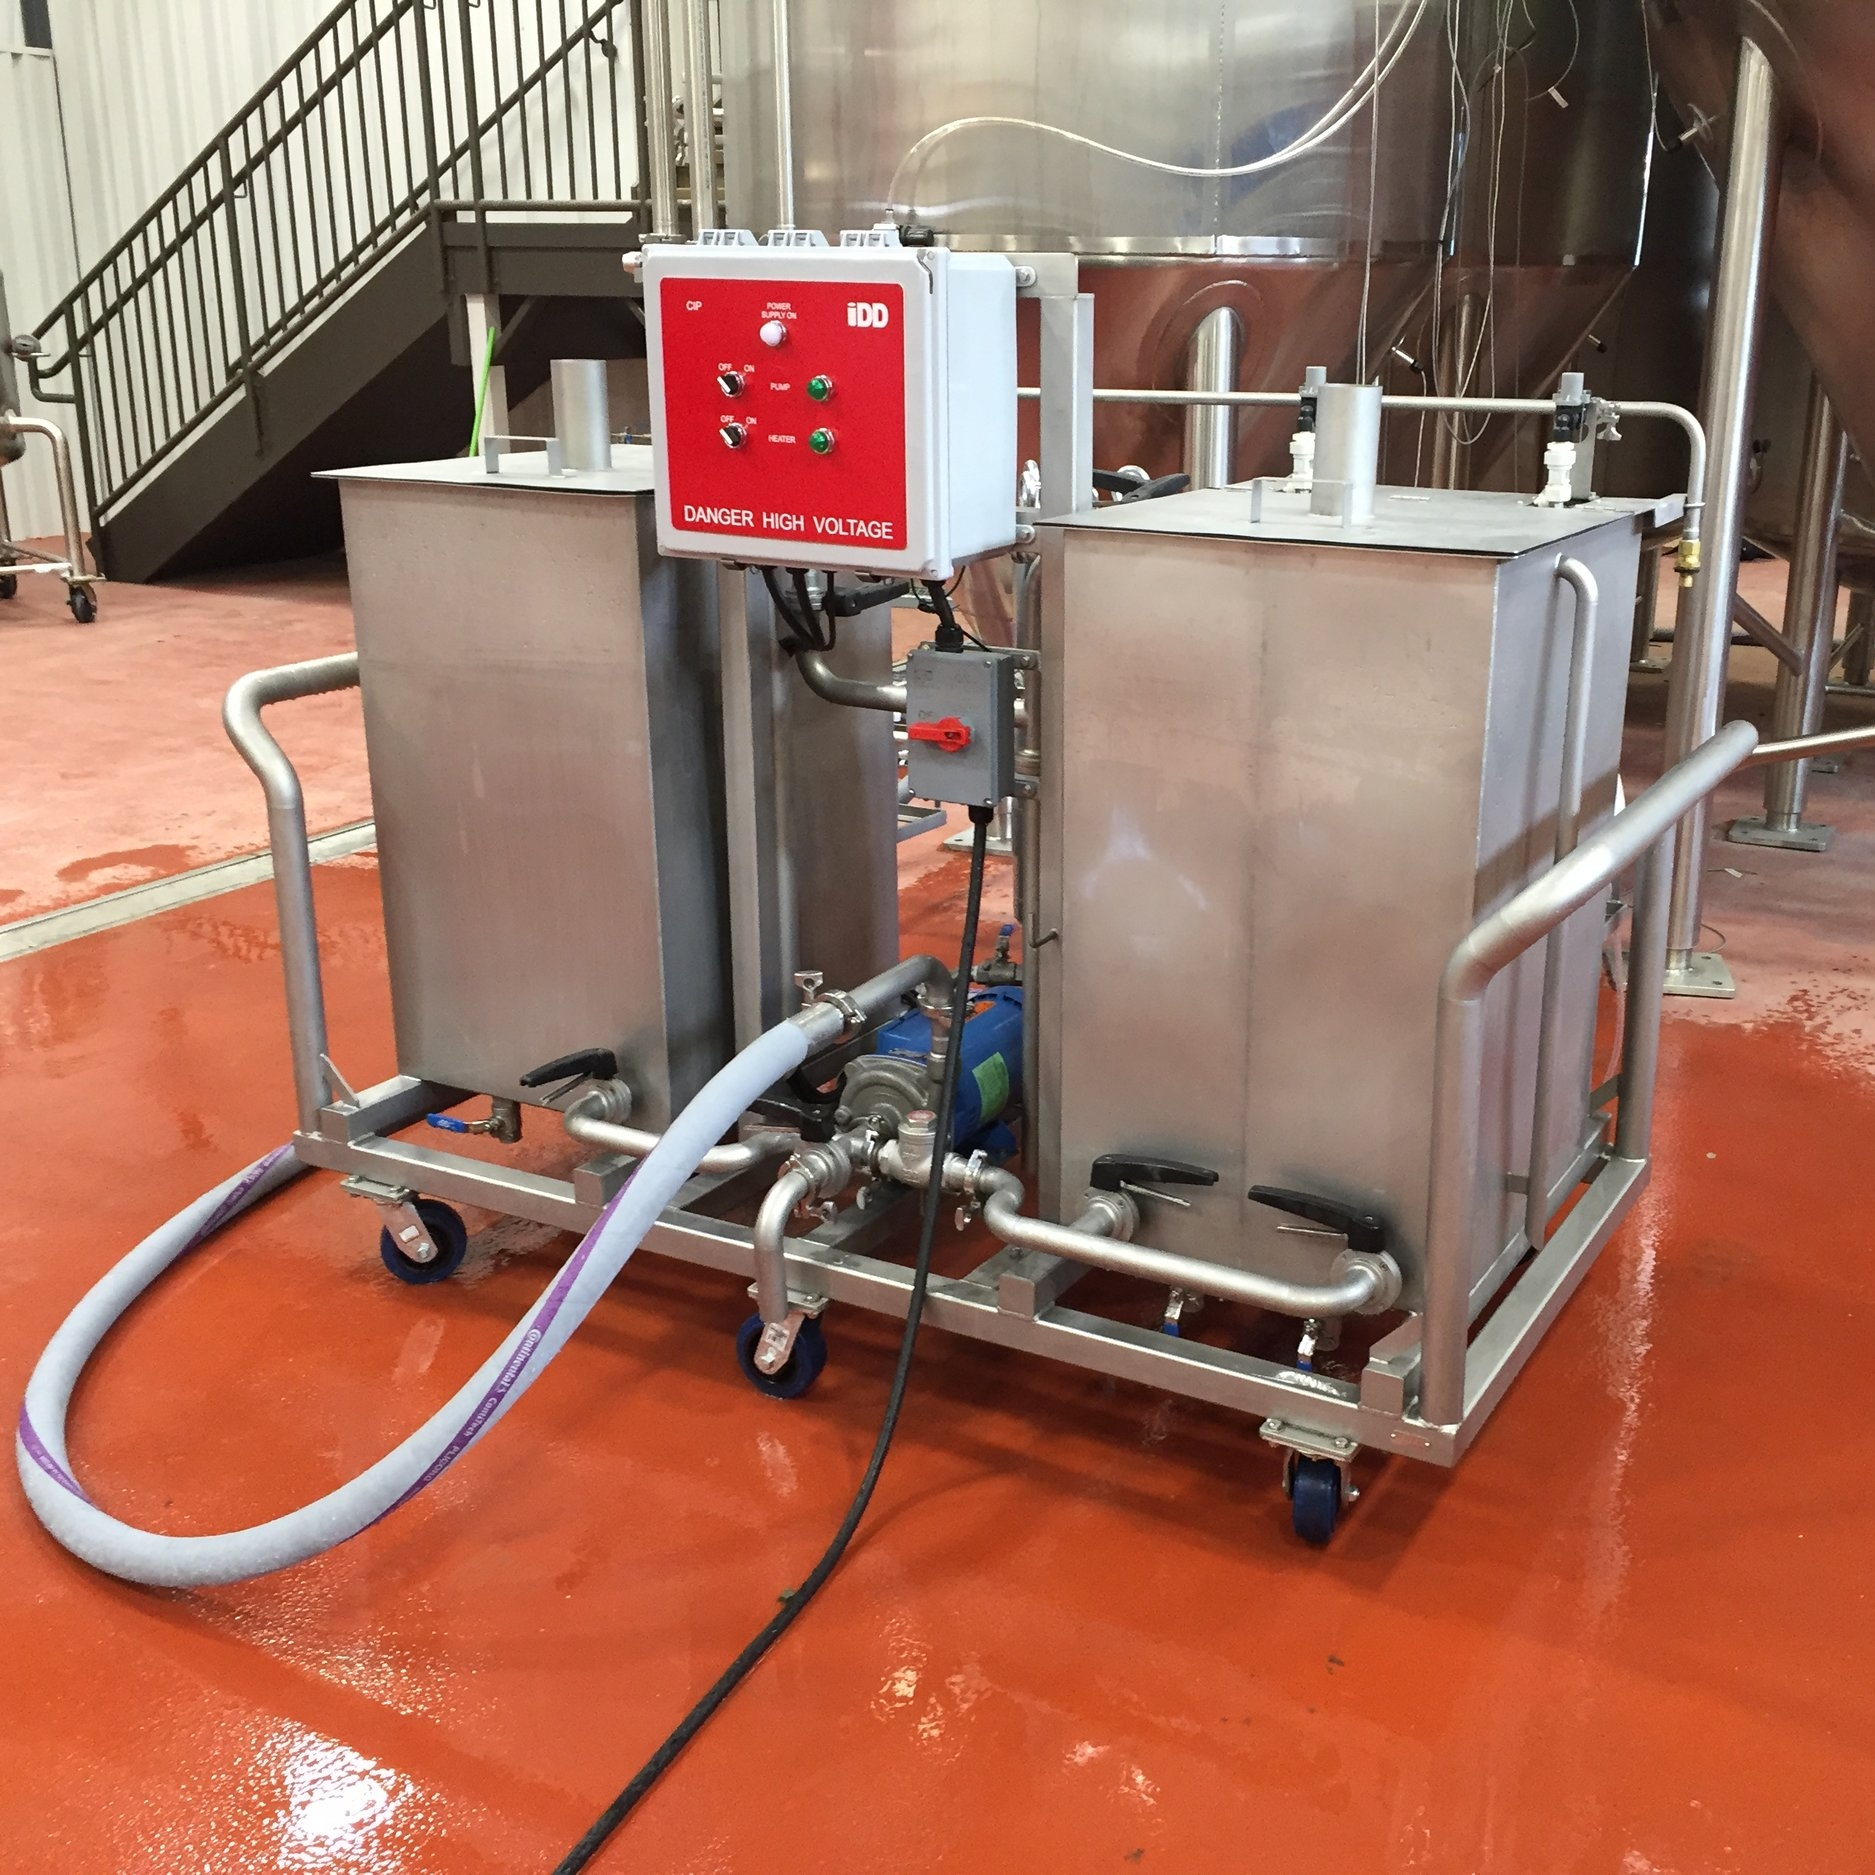 Mobile CIP Carts - Mobile carts allow CIP operations to be conducted throughout the brewery with minimal waste.  Our detergent boost pump is able to clean vessels up to 200 hL with ease.